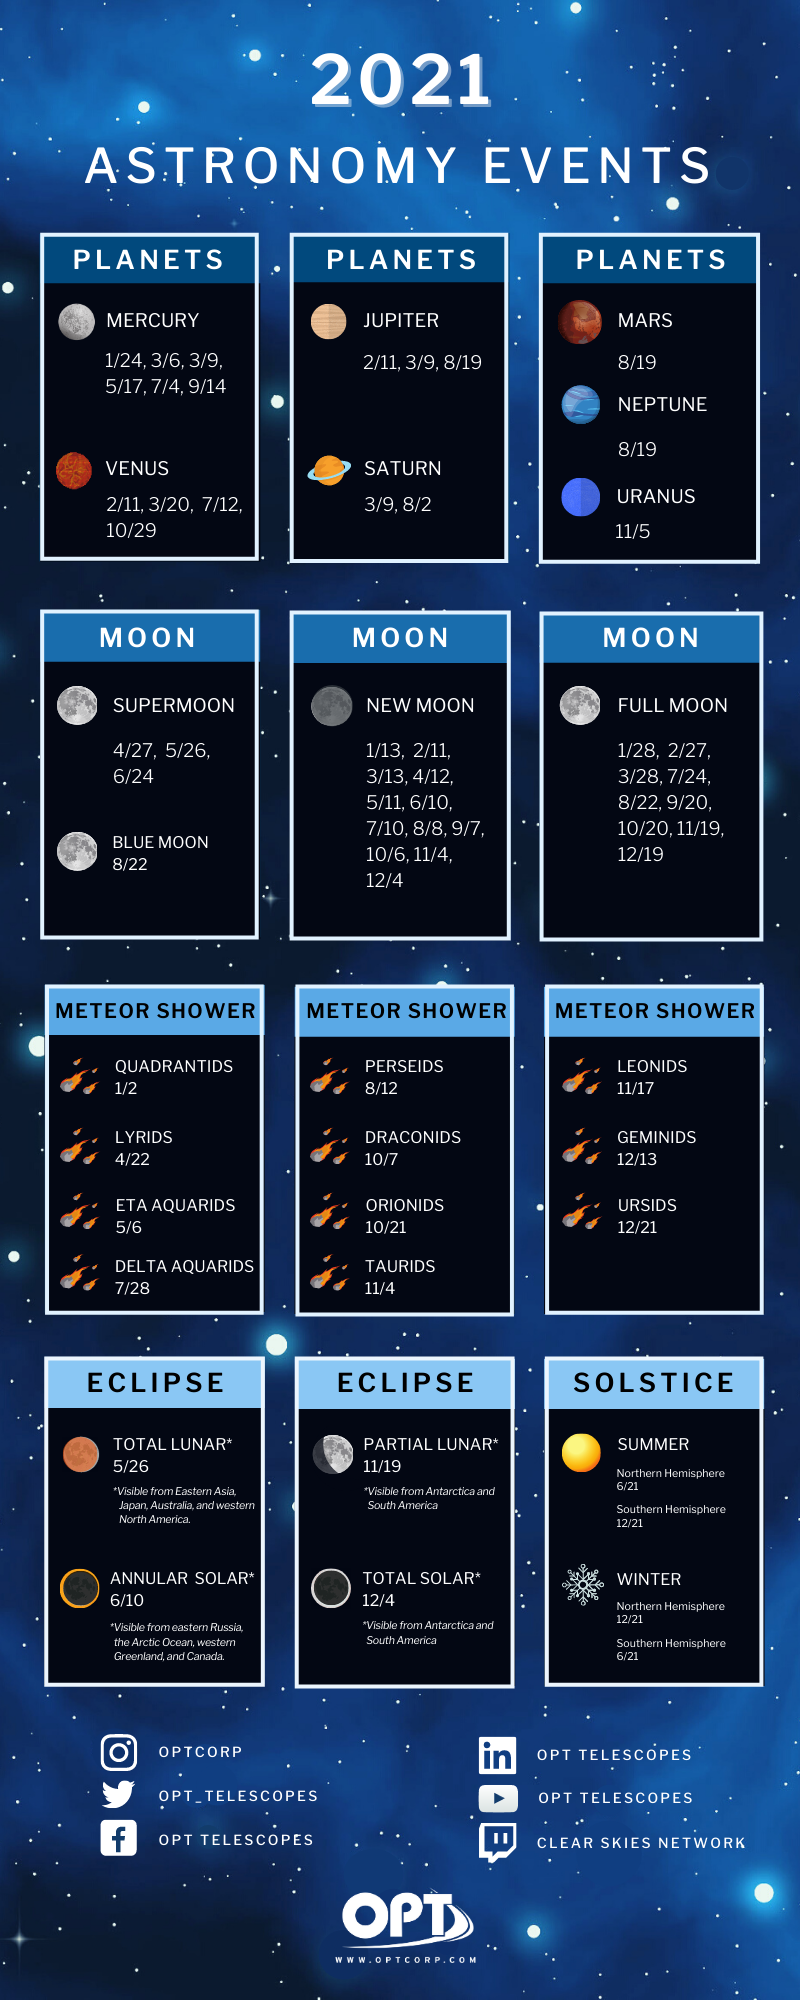 Astronomy Events for January 2021 [Free Download] 🌟